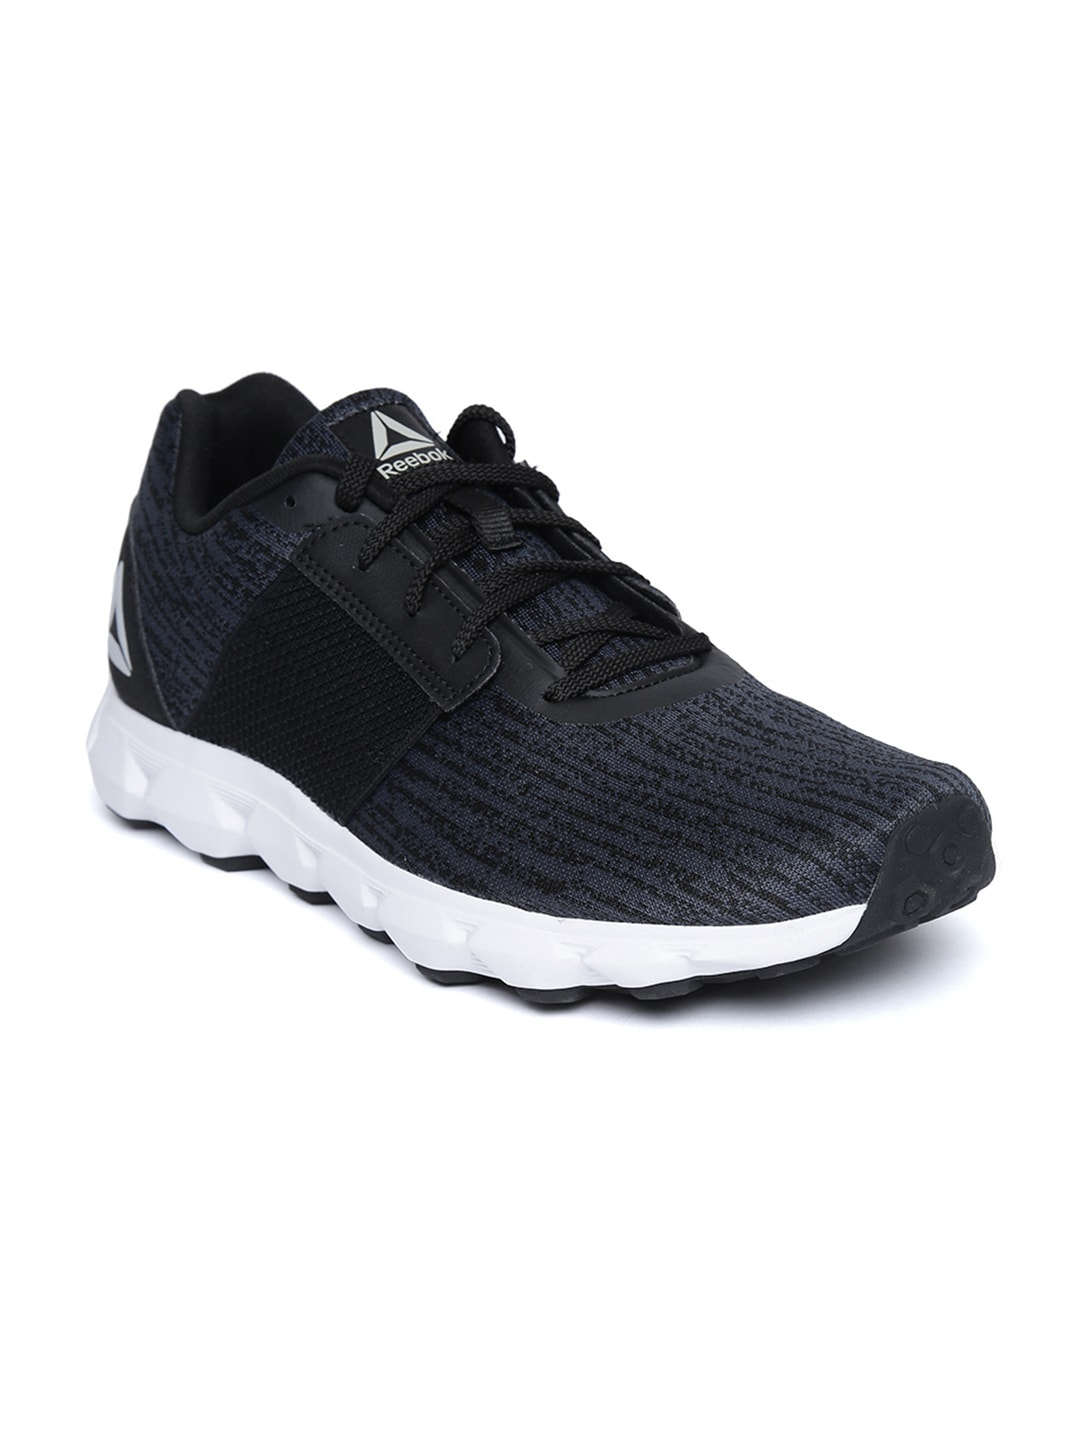 98d878232dba5 Footwear Online - Shop for Men